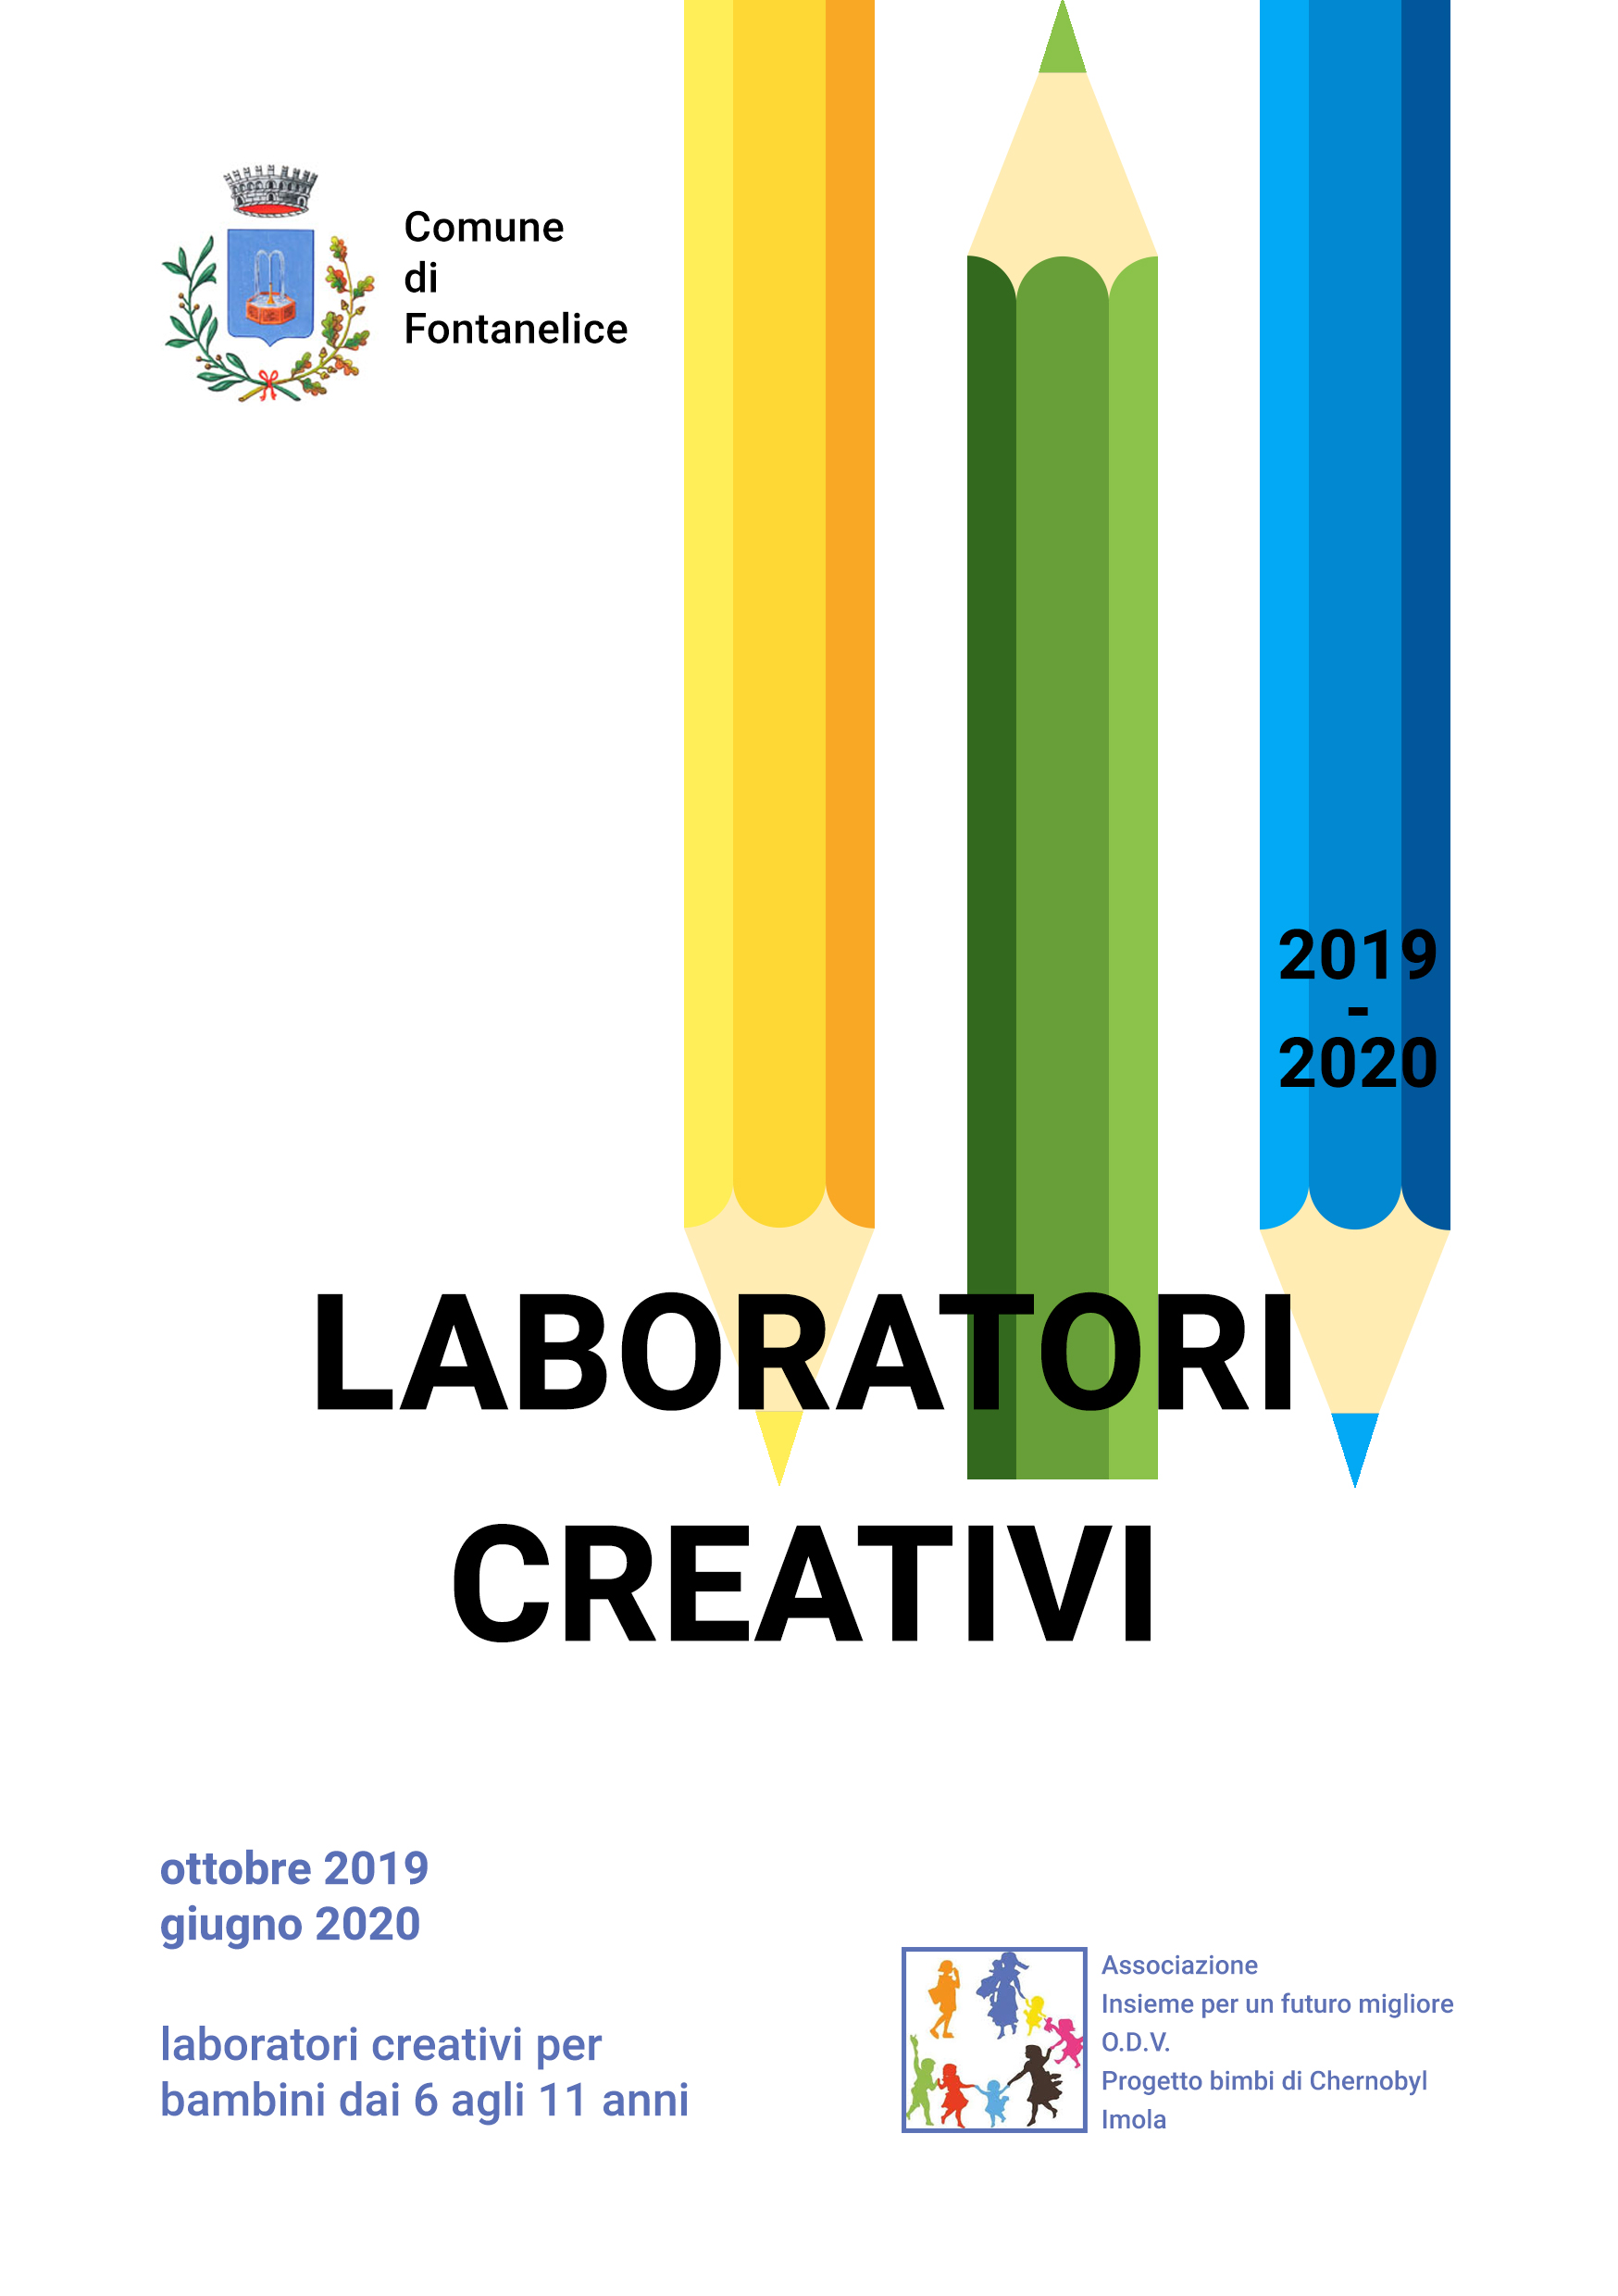 Laboratori creativi 2019-2020